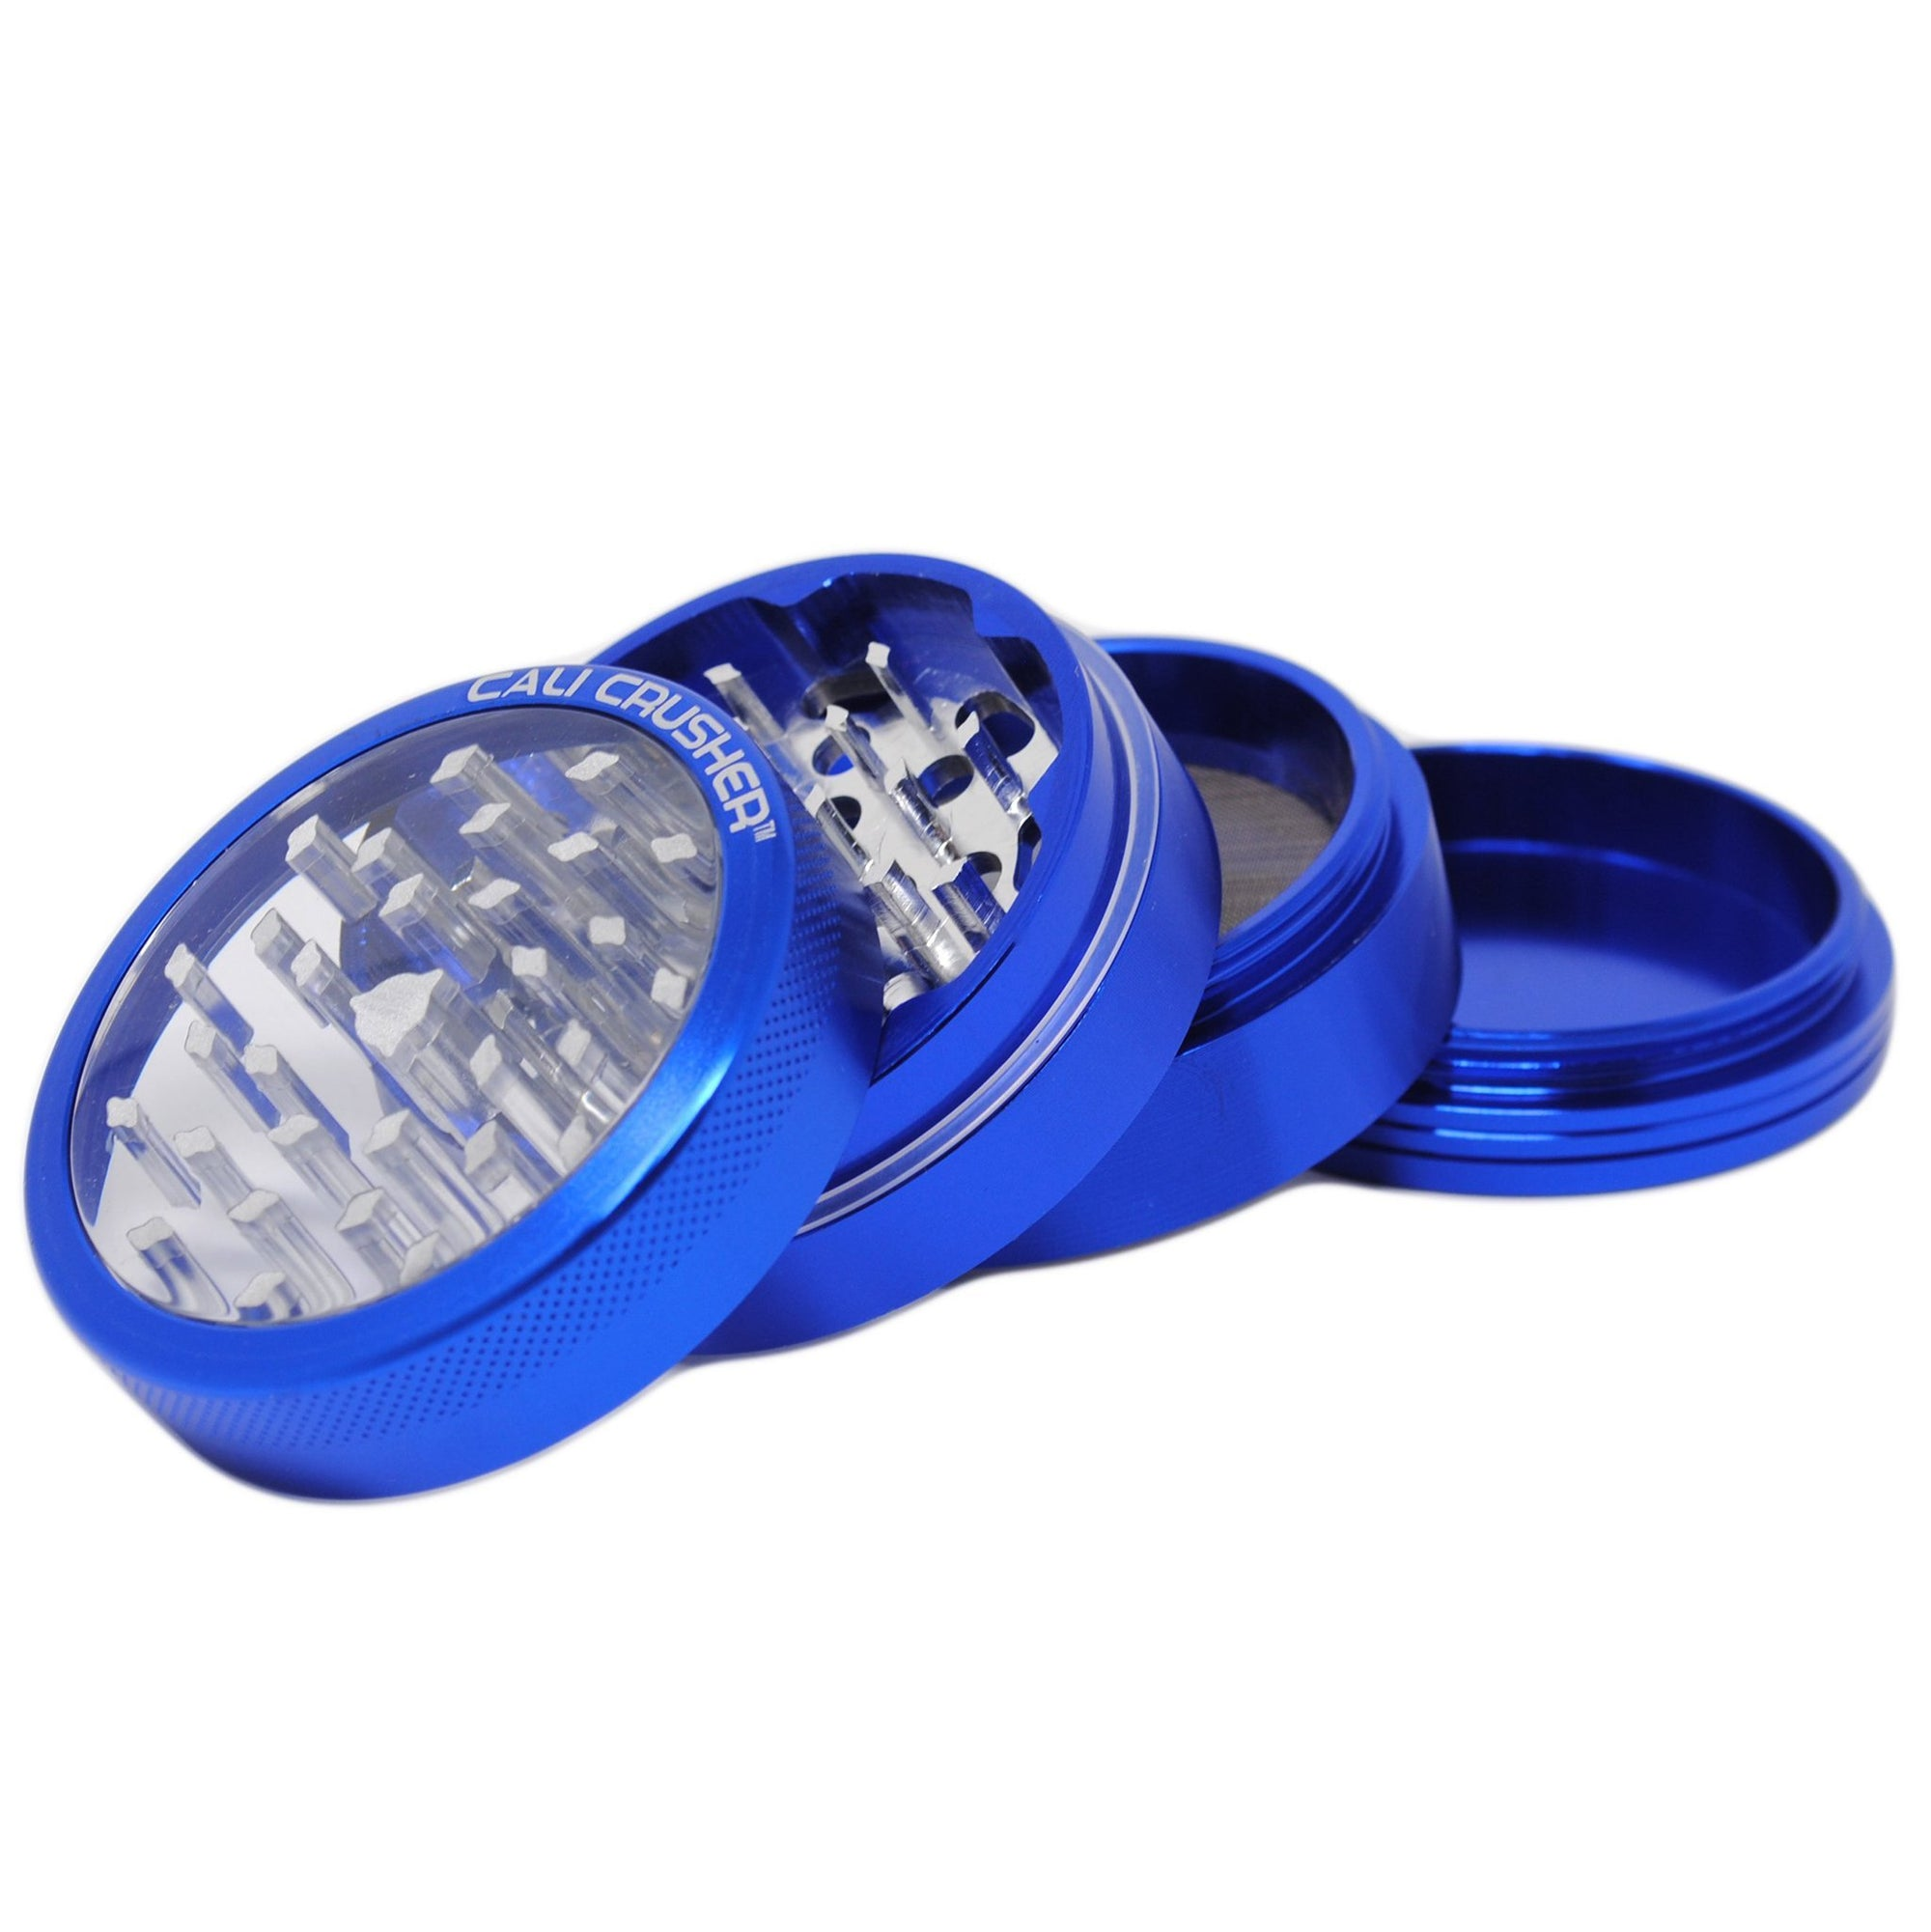 GRAV Cali Crusher Clear Top 4 Piece Grinder - 62mm